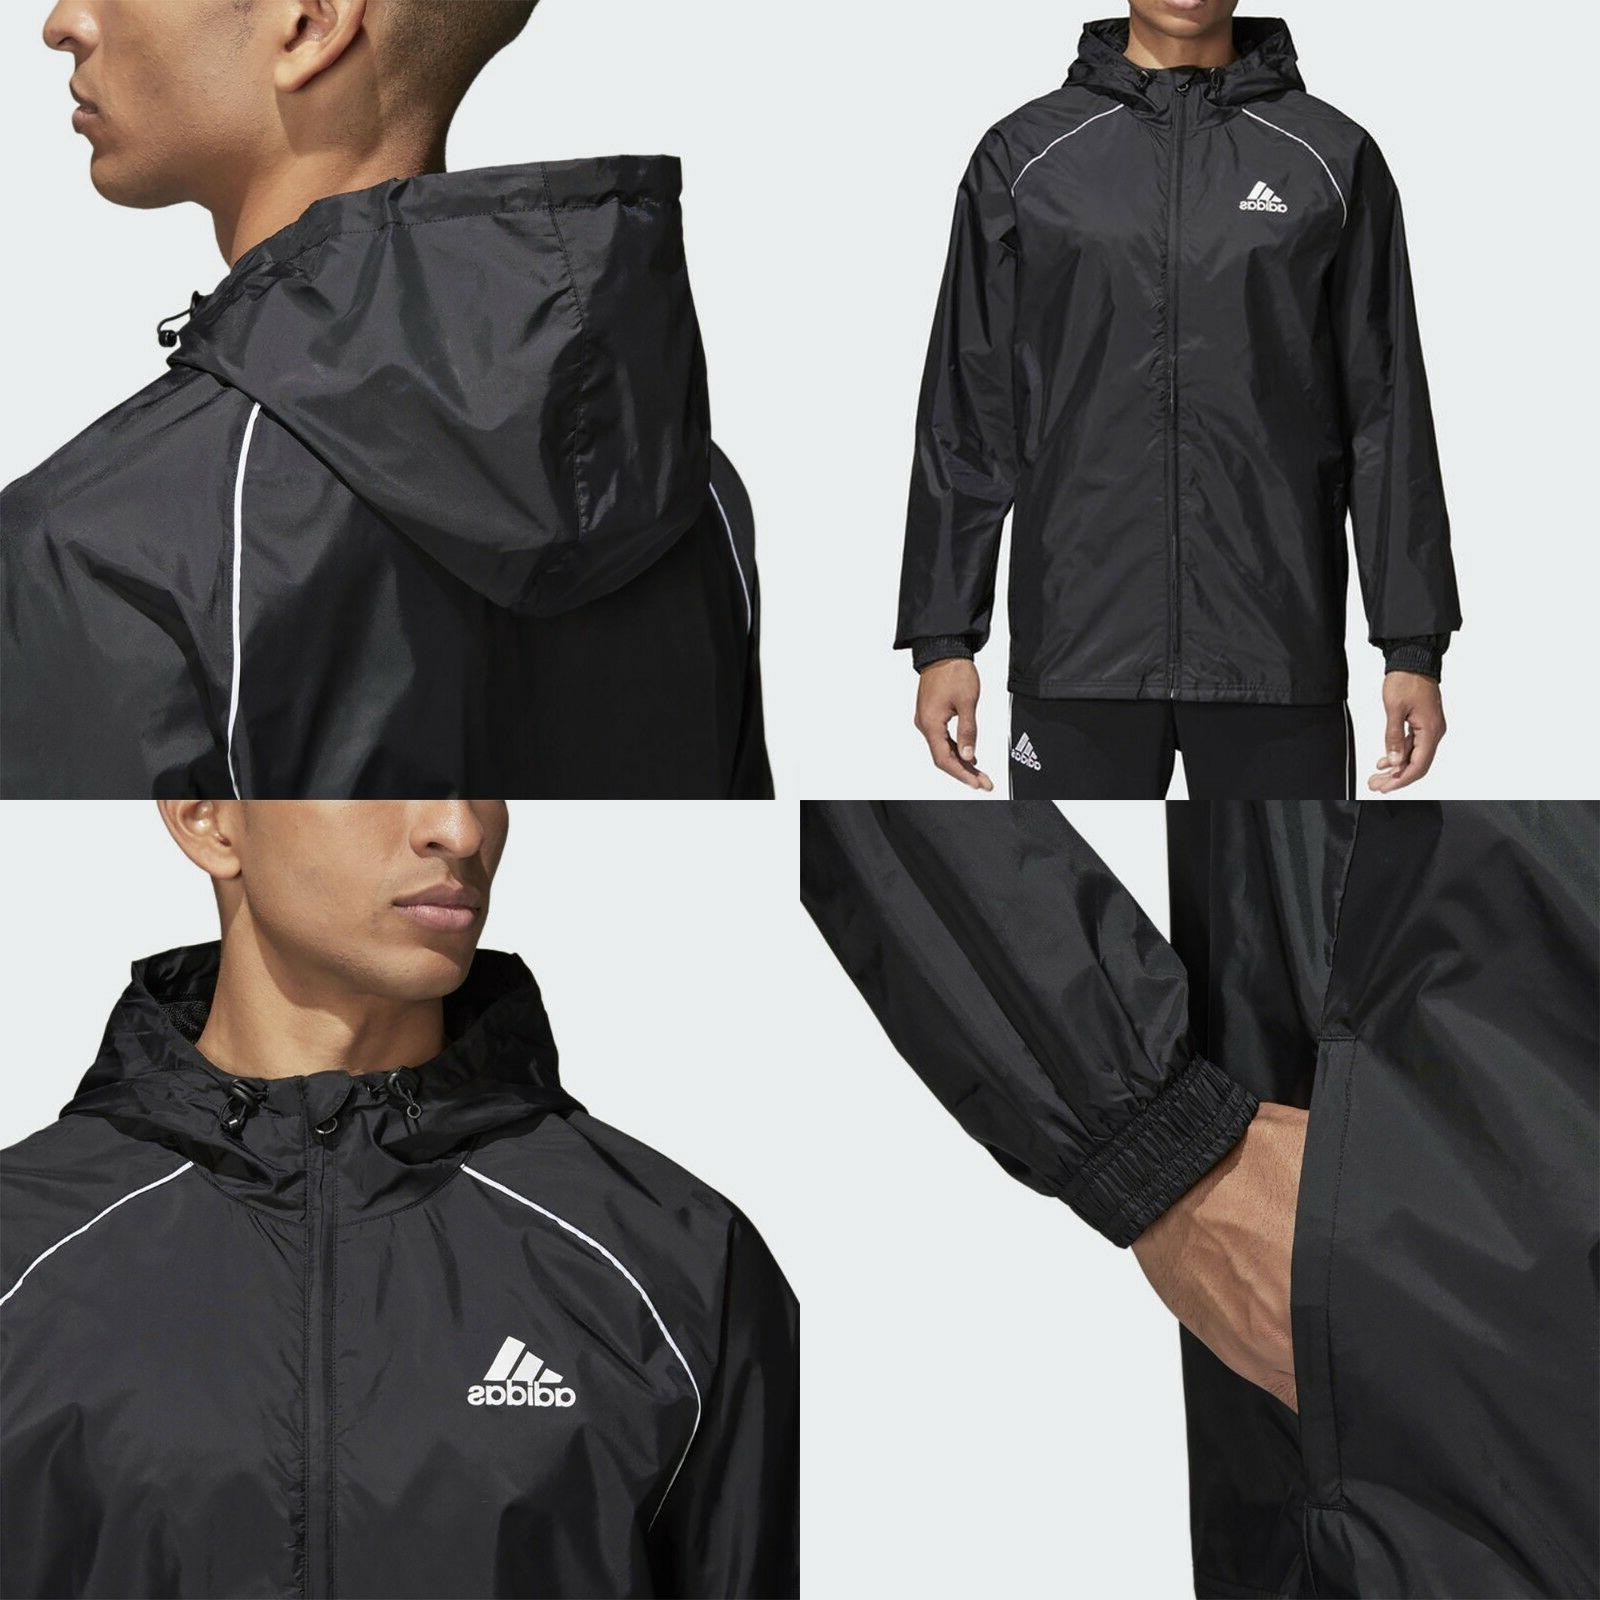 latest design hot-selling clearance top-rated quality Adidas Mens Lightweight Rain Jacket Waterproof Coat Top